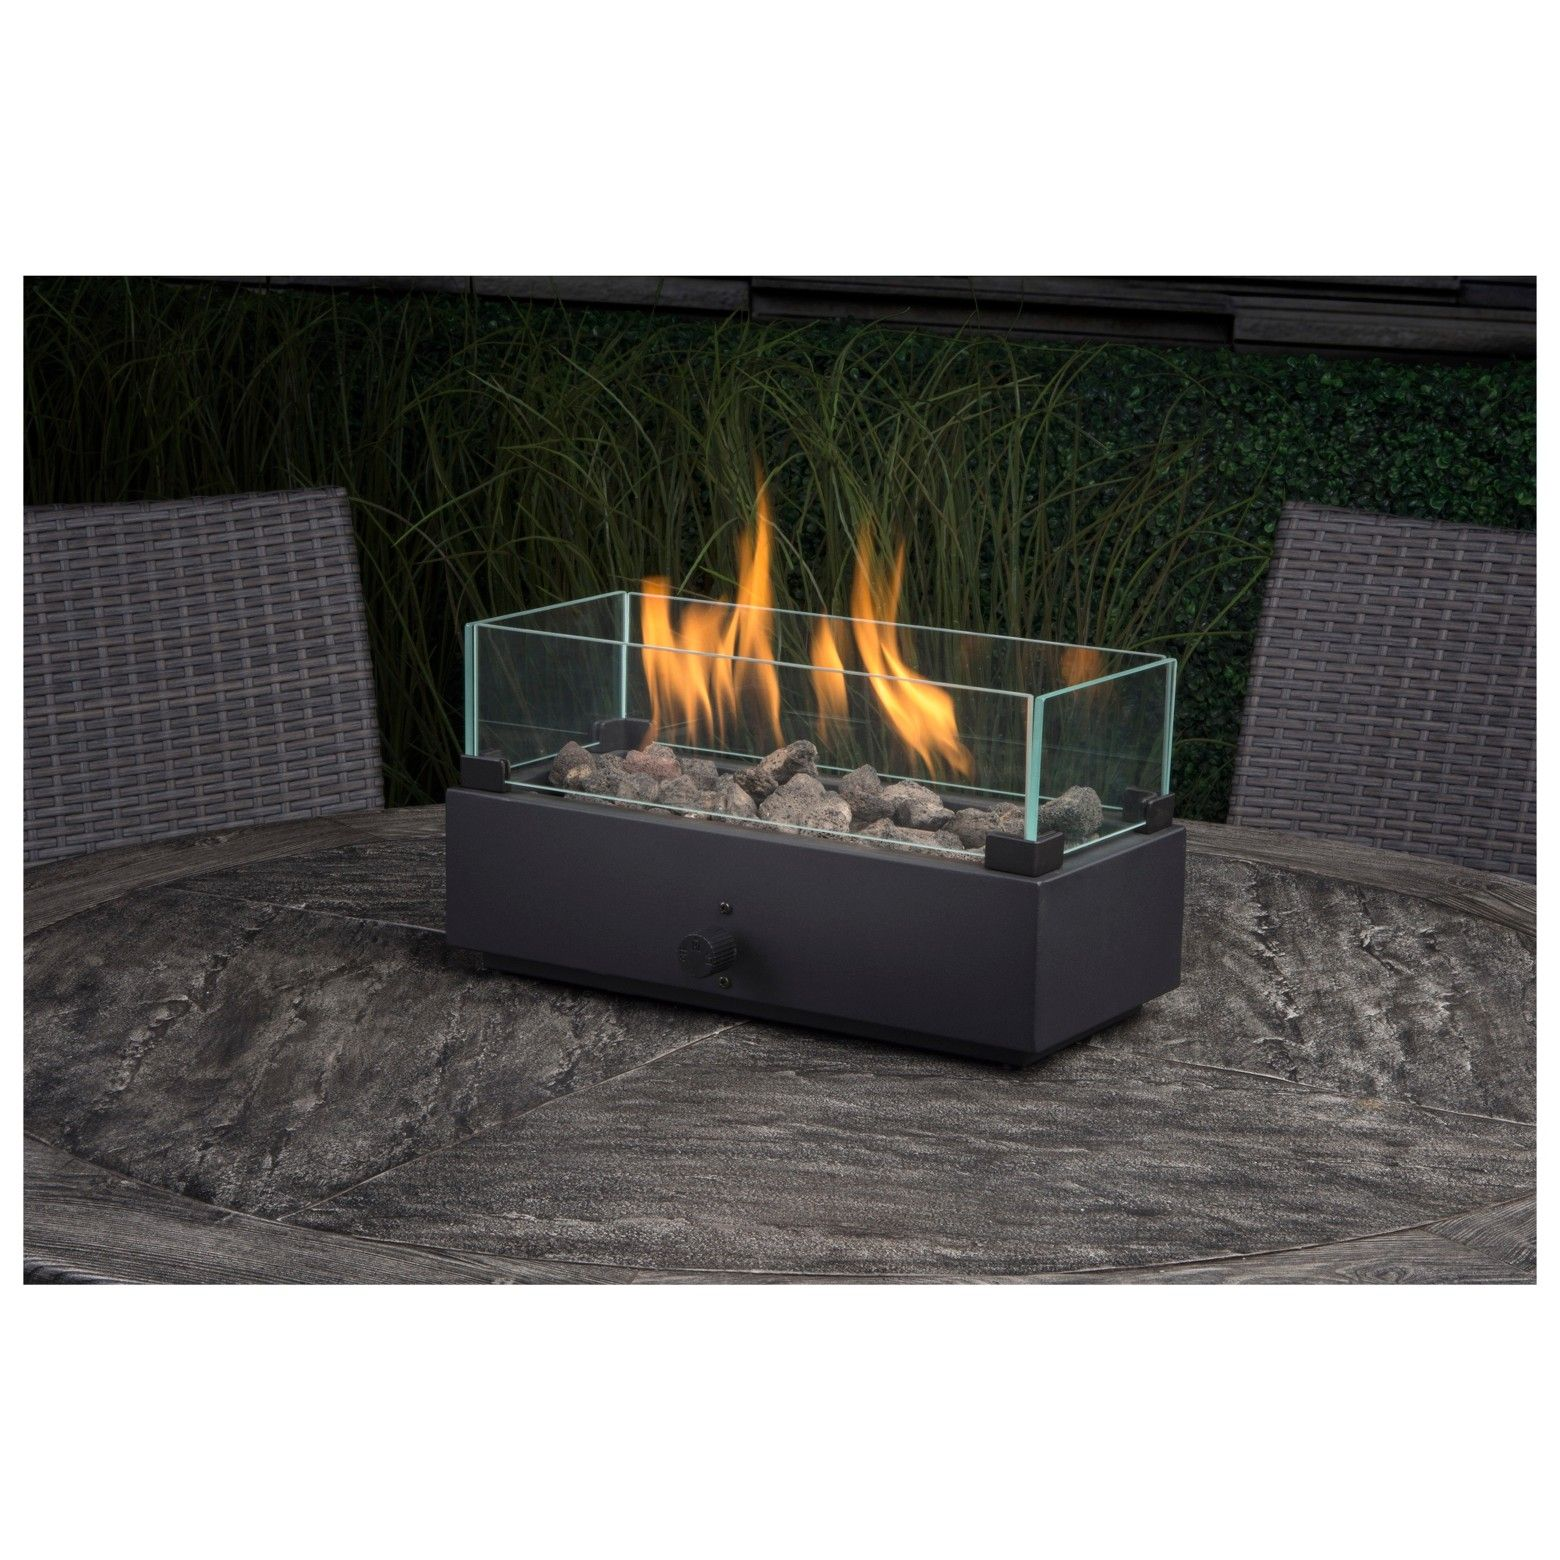 Transform Your Ordinary Patio Set With The Two Harbors 14 Long Tabletop Firebowl From Threshold Mount This Firebow Gas Fire Table Outdoor Fire Pit Fire Table